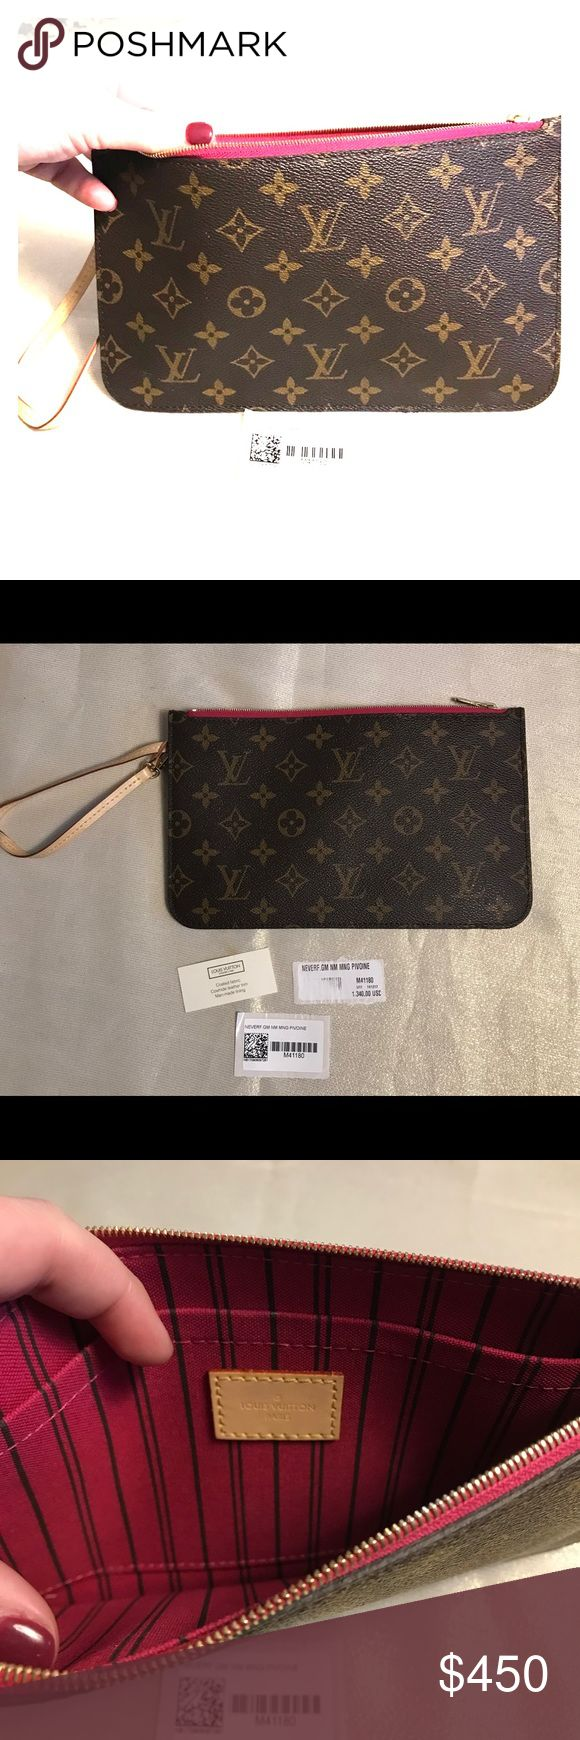 Authentic Louis Vuitton Wristlet Pouch Came with my Louis Vuitton Neverfull GM. Never been used, brand new. Bought from Louis Vuitton at International mall in Tampa FL. Pink inside ♥️.  Inside code is SD3197 Louis Vuitton Bags Clutches & Wristlets